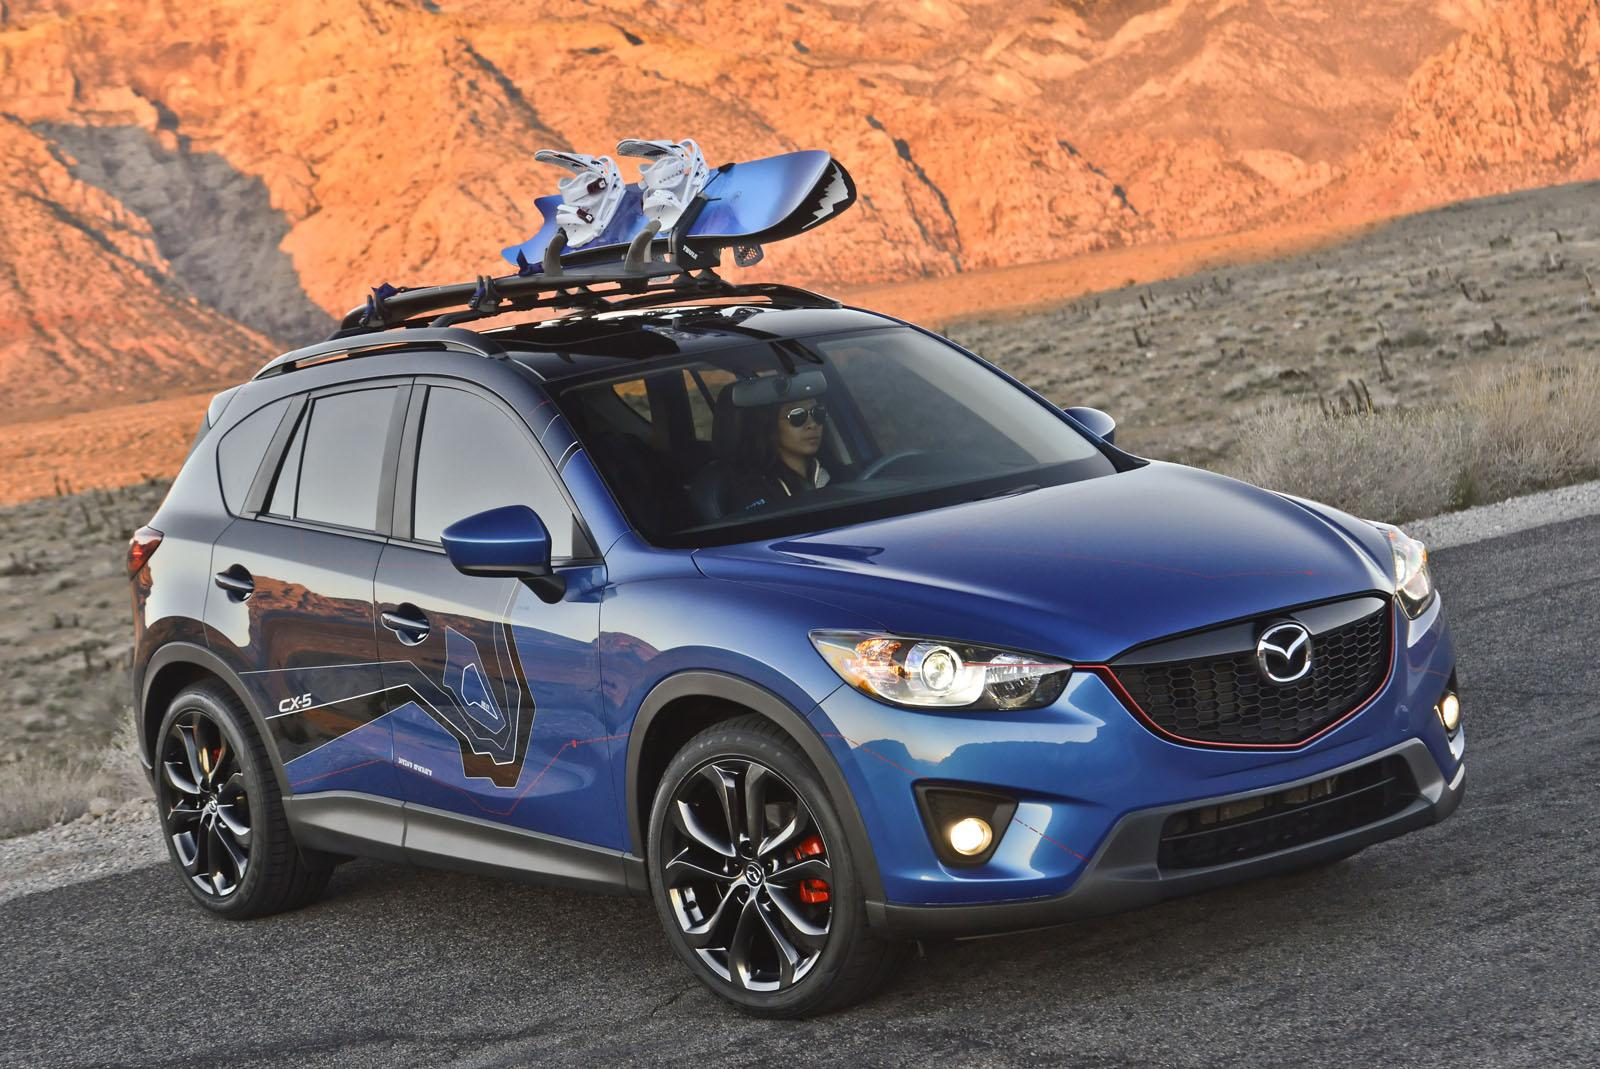 https://s1.cdn.autoevolution.com/images/news/mazda-cx-5-180-attends-sema-photo-gallery-51176_1.jpg